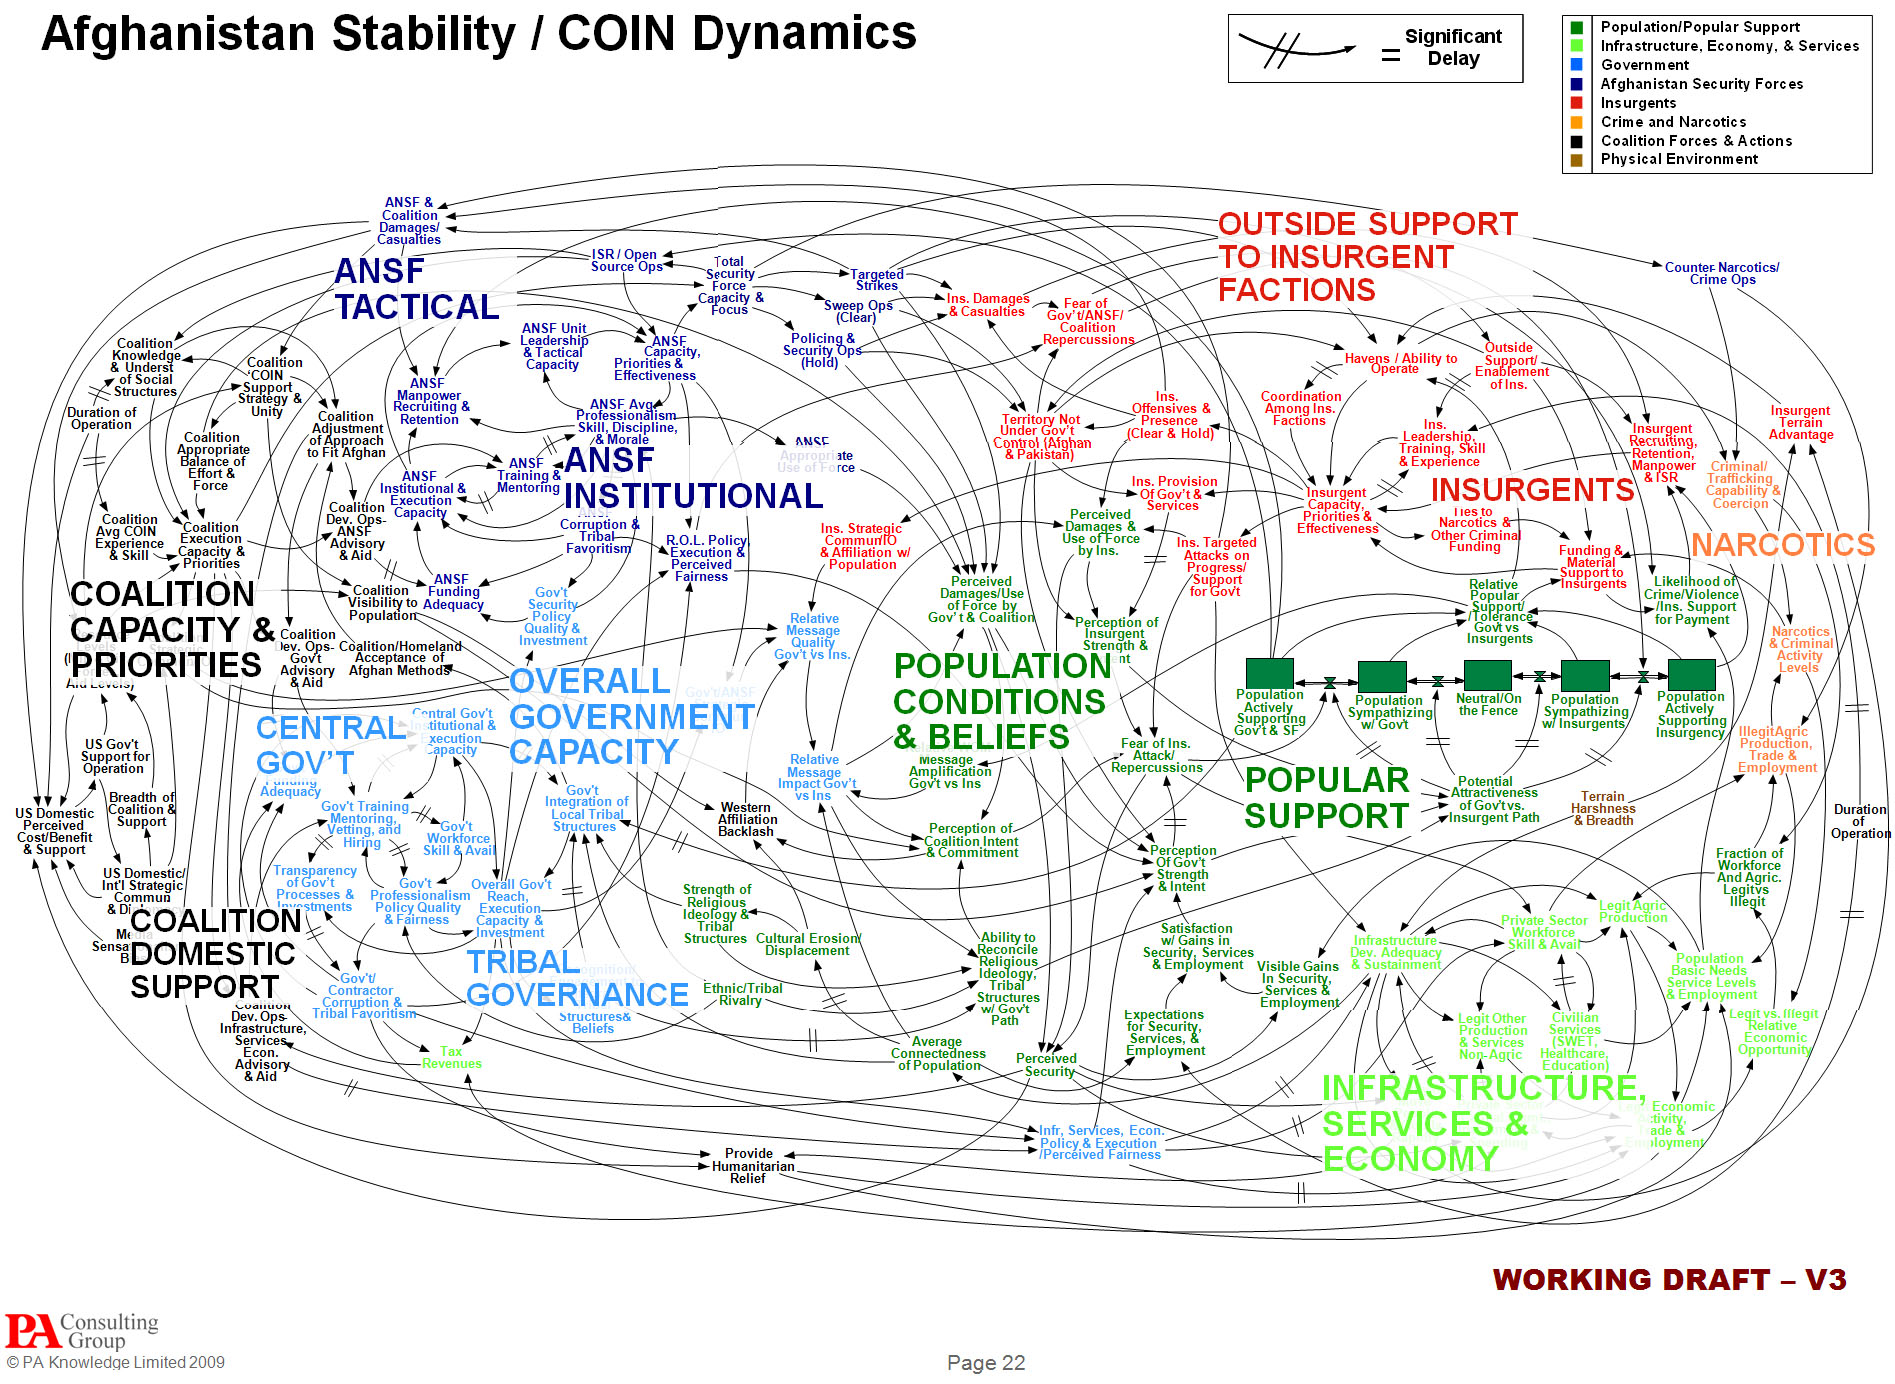 US Military PowerPoint slide designed to explain Afghanistan strategy.